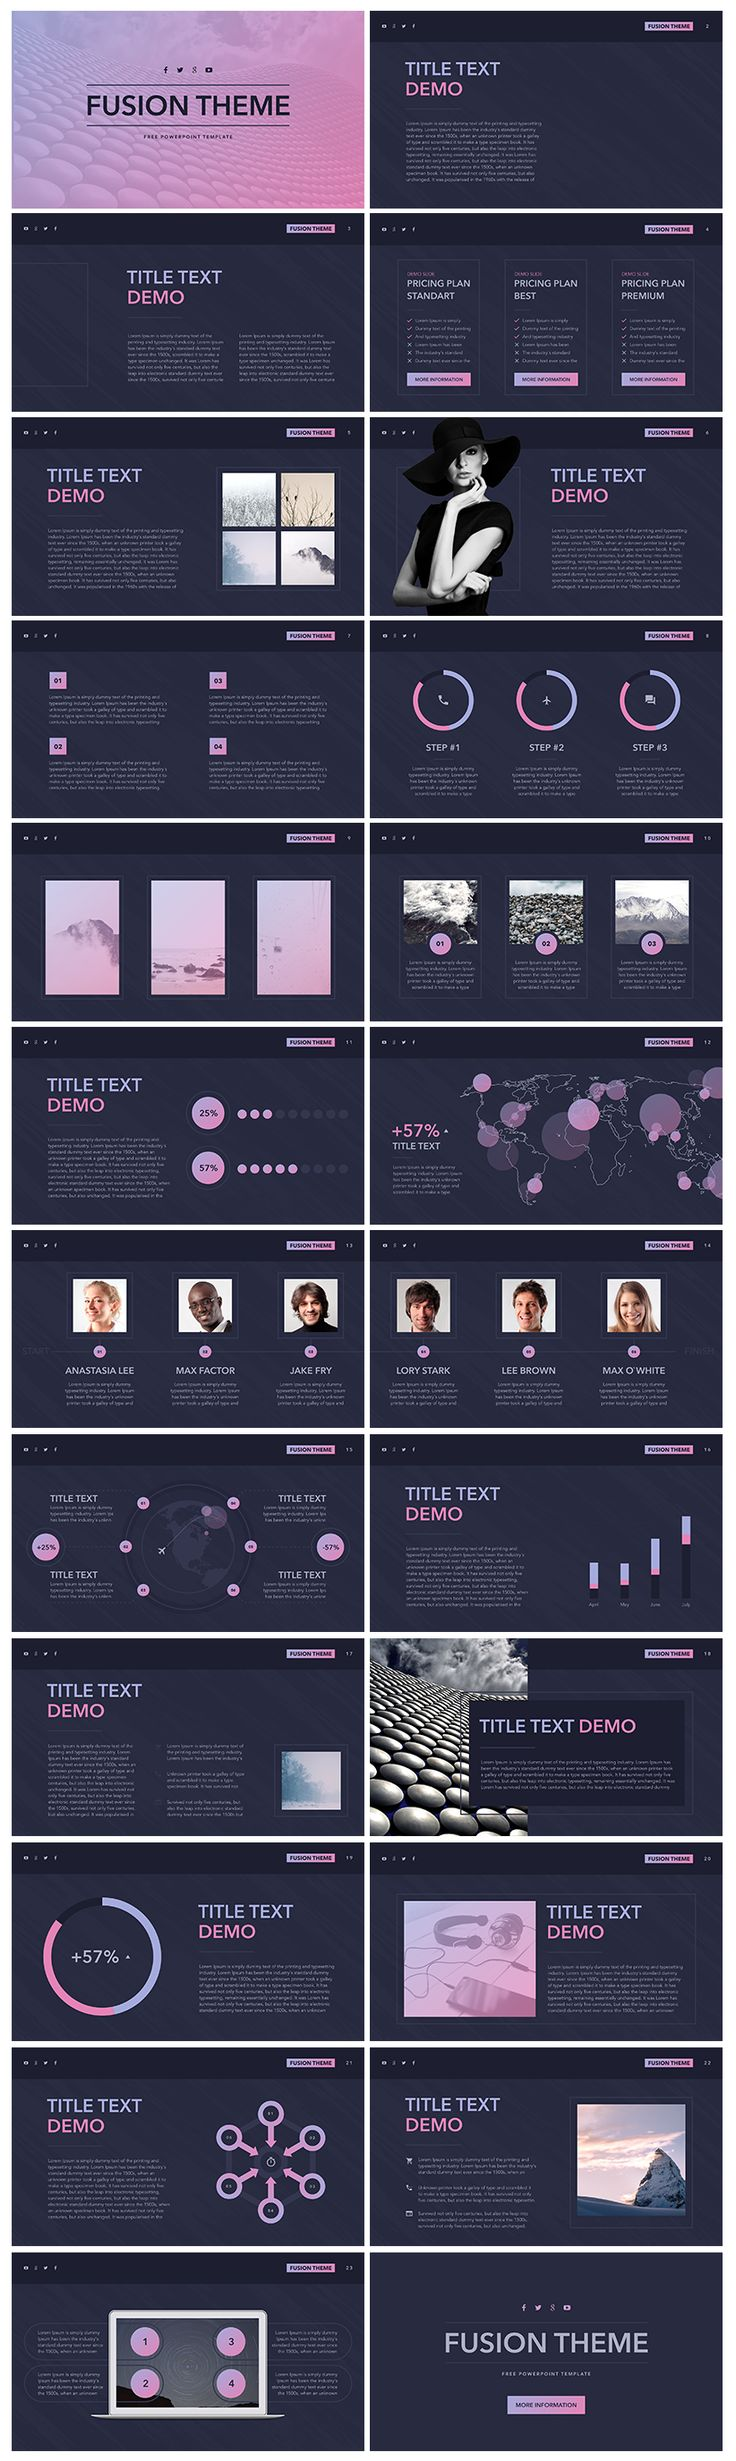 40 best free powerpoint template images on pinterest free stencils the free powerpoint template fusion is a multipurpose template with a variety of installed tools such as biographies tables maps graphs and charts toneelgroepblik Image collections